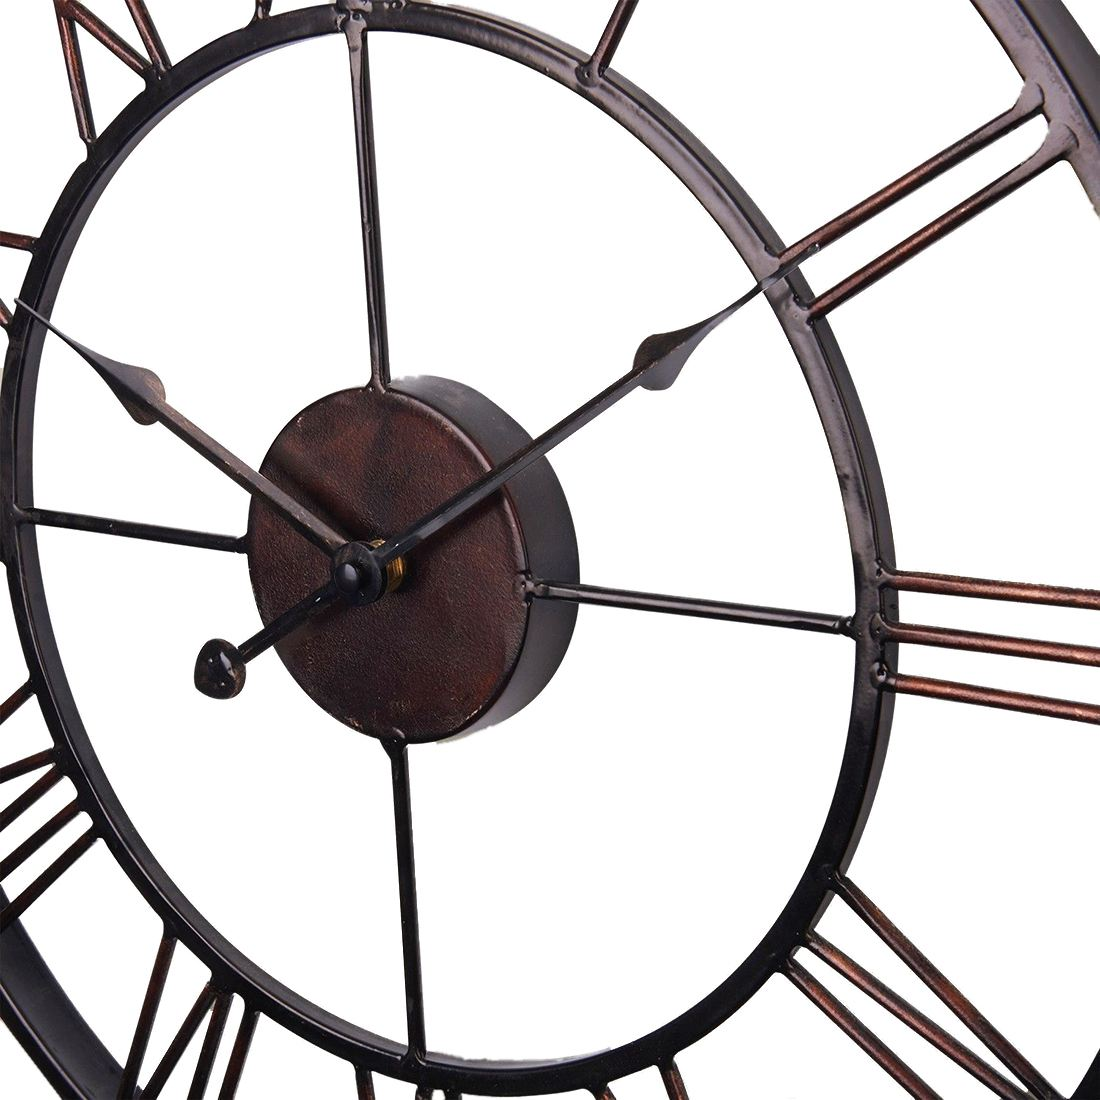 Hot Sale Extra Large Vintage Style Statement Metal Wall Clock Country Style - Chocolate color